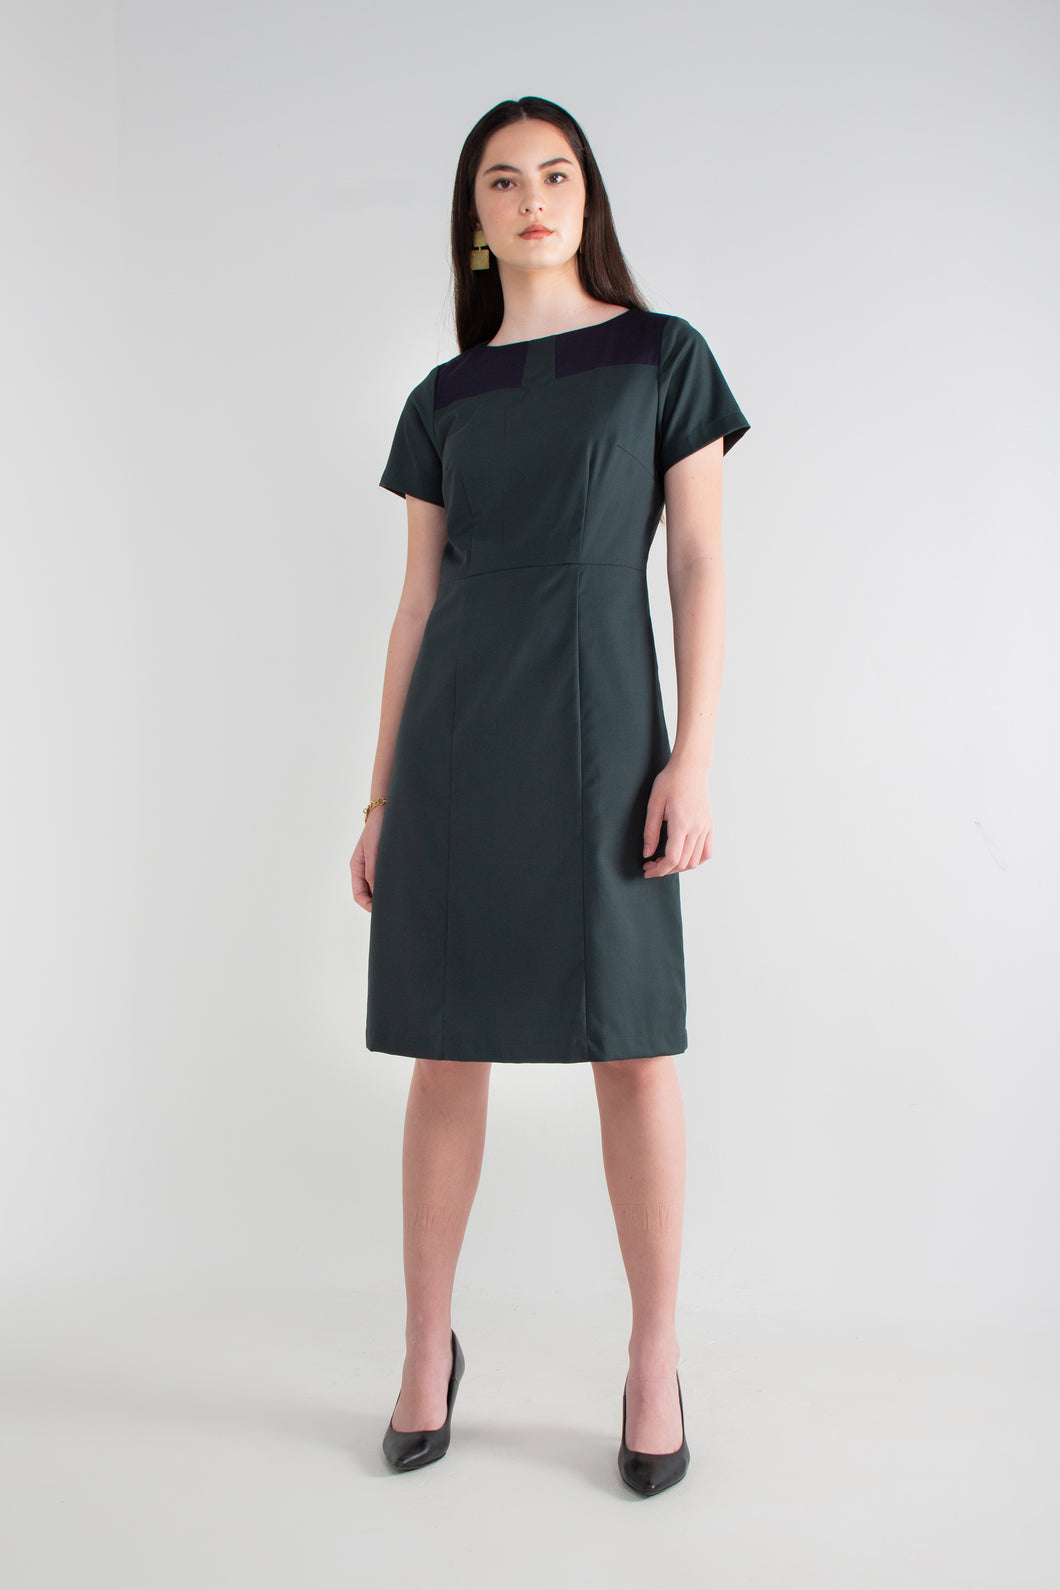 Rebirth Sheath Dress